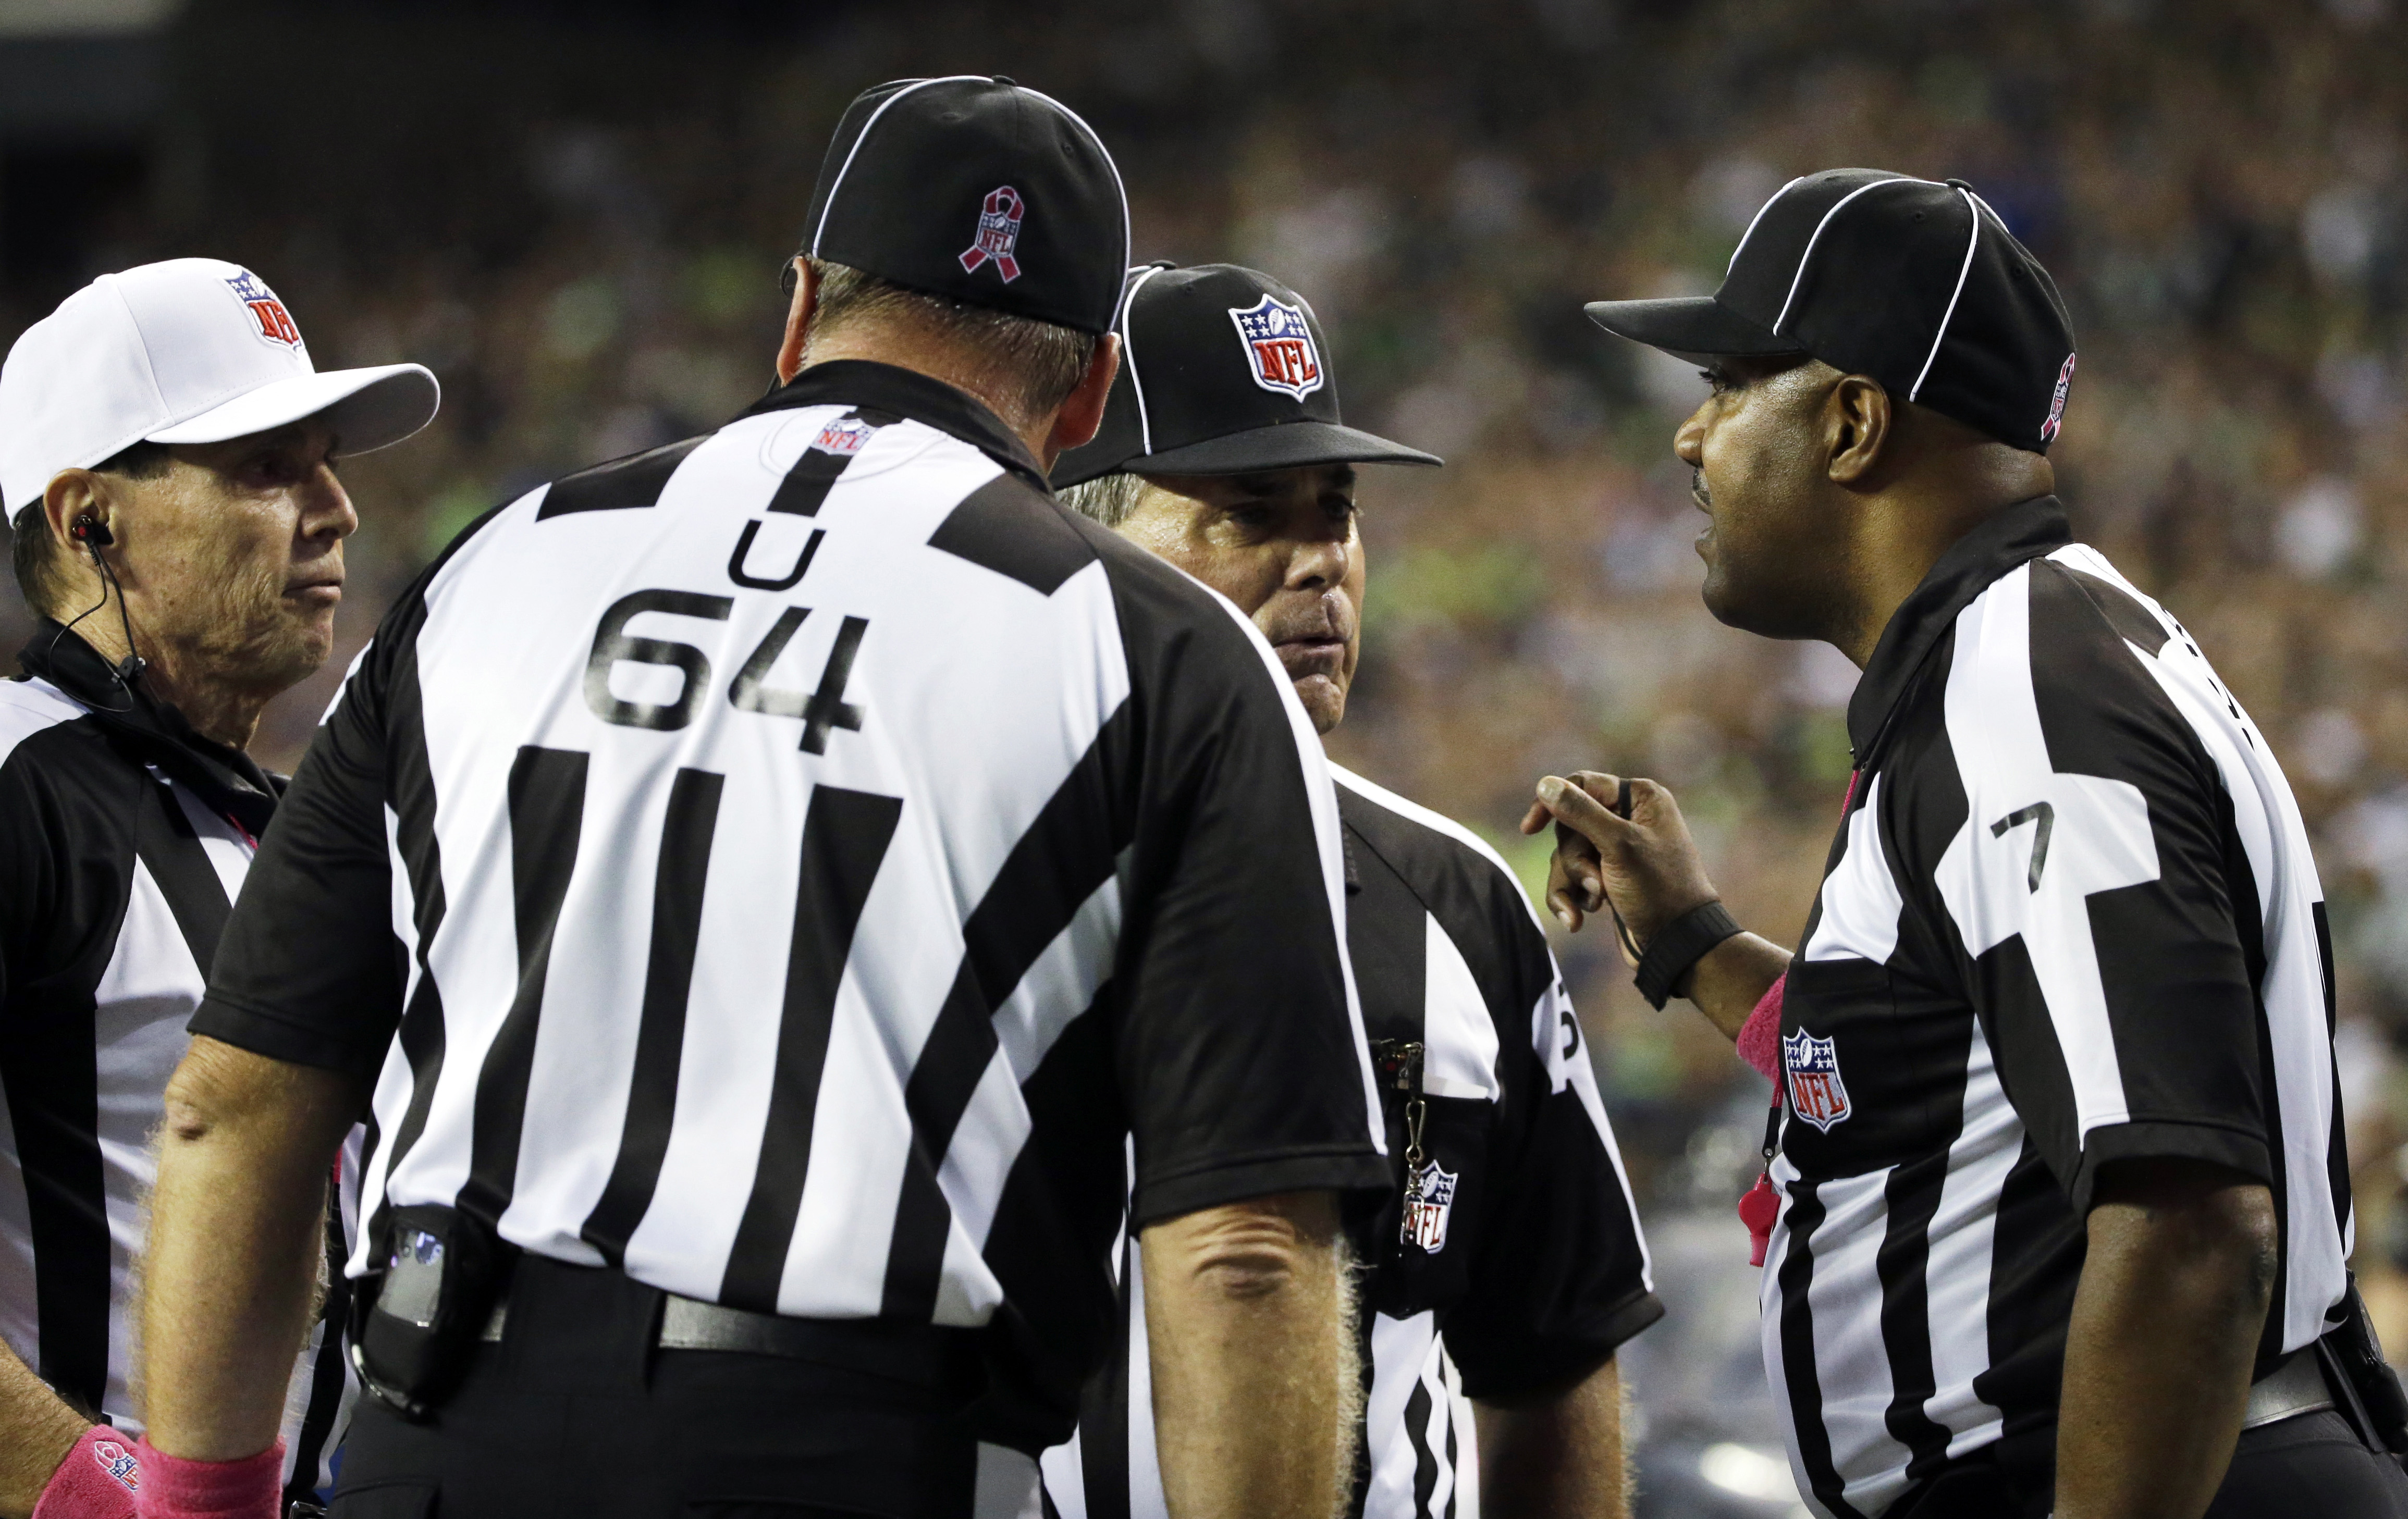 FILE - In this Oct. 5, 2015, file photo, officials, including side judge Keith Washington, right, discuss a play late in the fourth quarter of an NFL football game in Seattle, where a fumble by Detroit Lions wide receiver Calvin Johnson went out of the ba